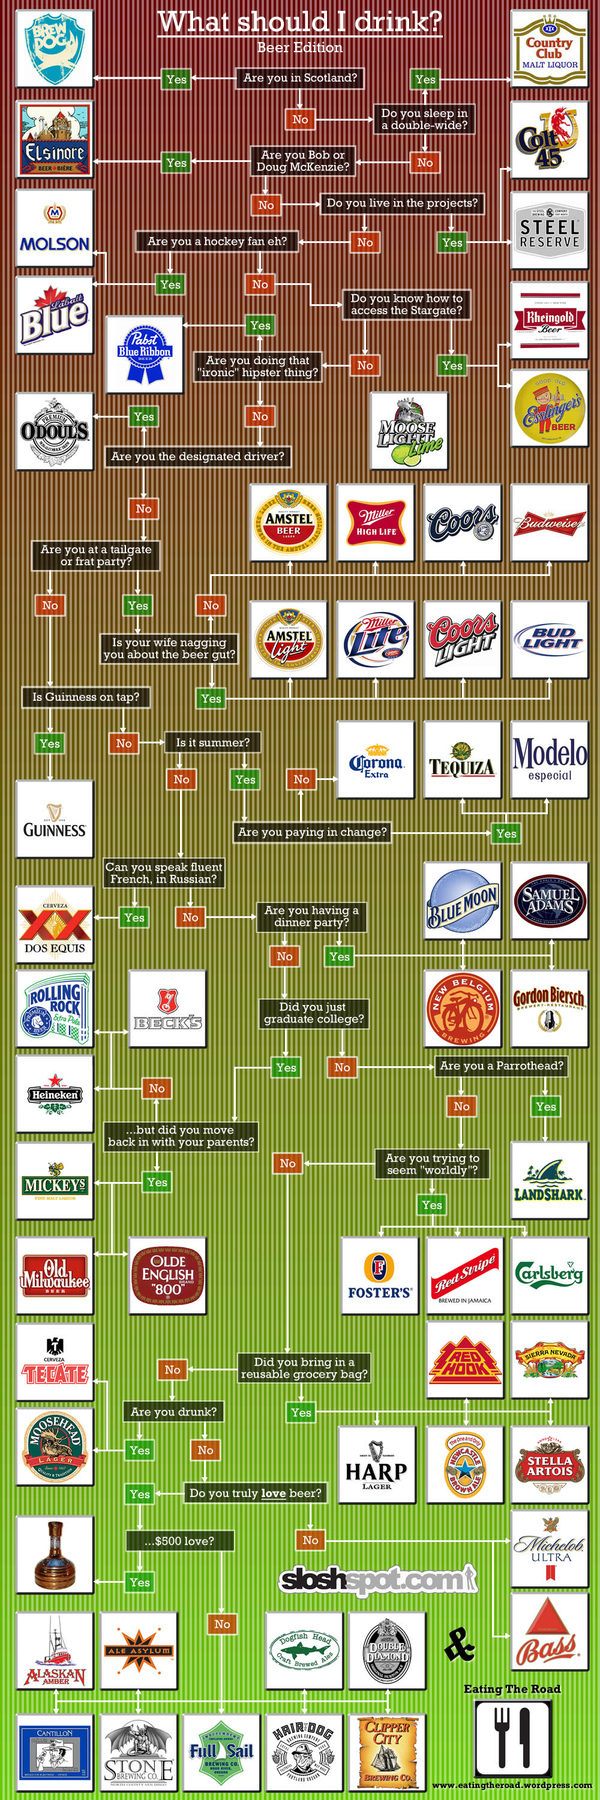 What Beer Should I Drink The Flowchart